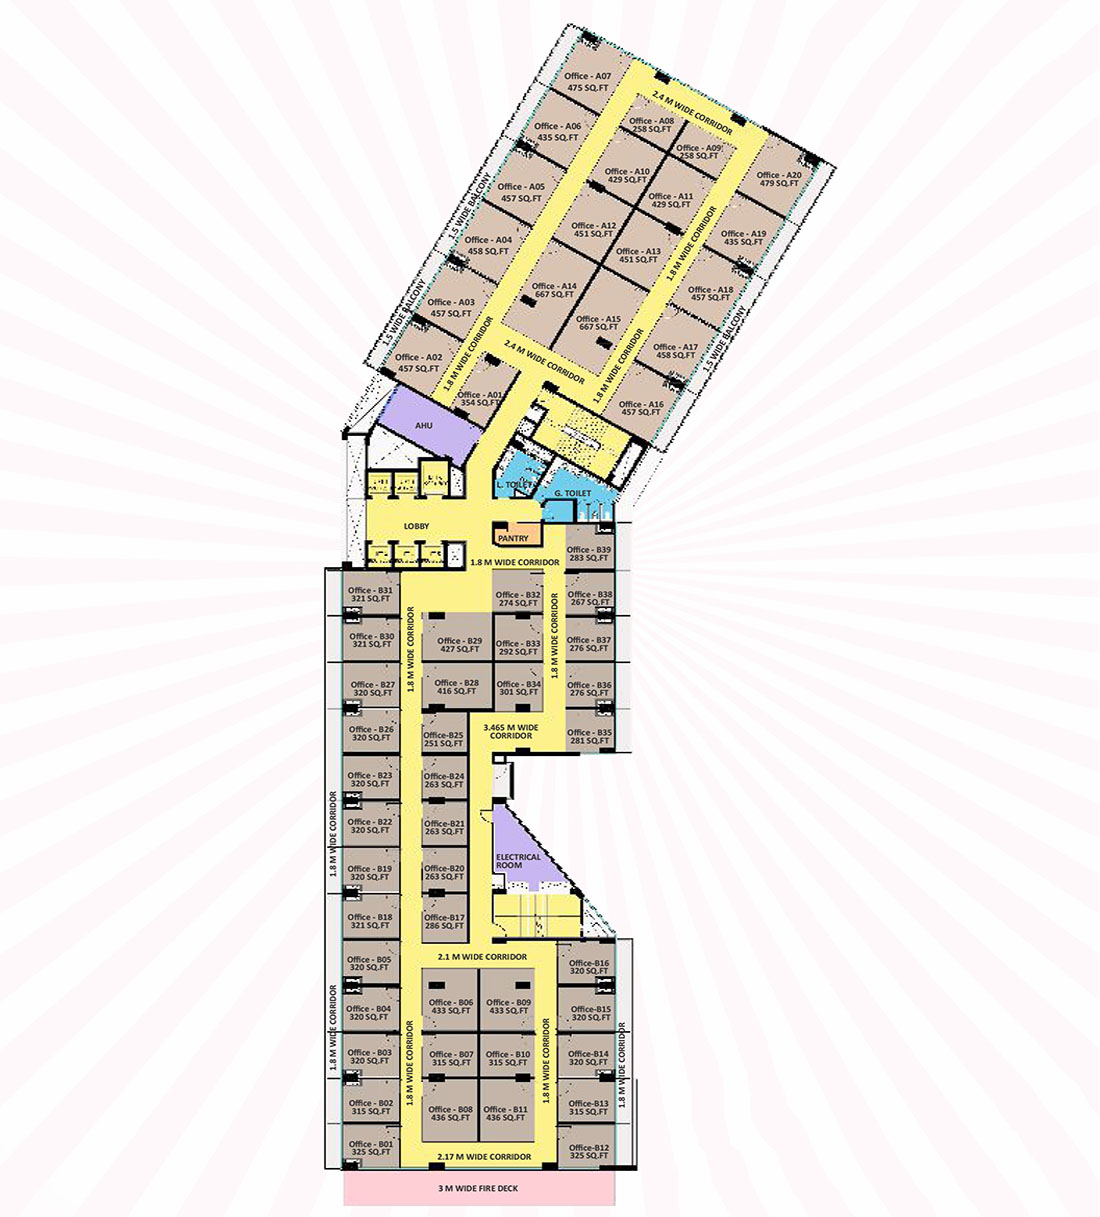 nx one trade center office spaces floor plan